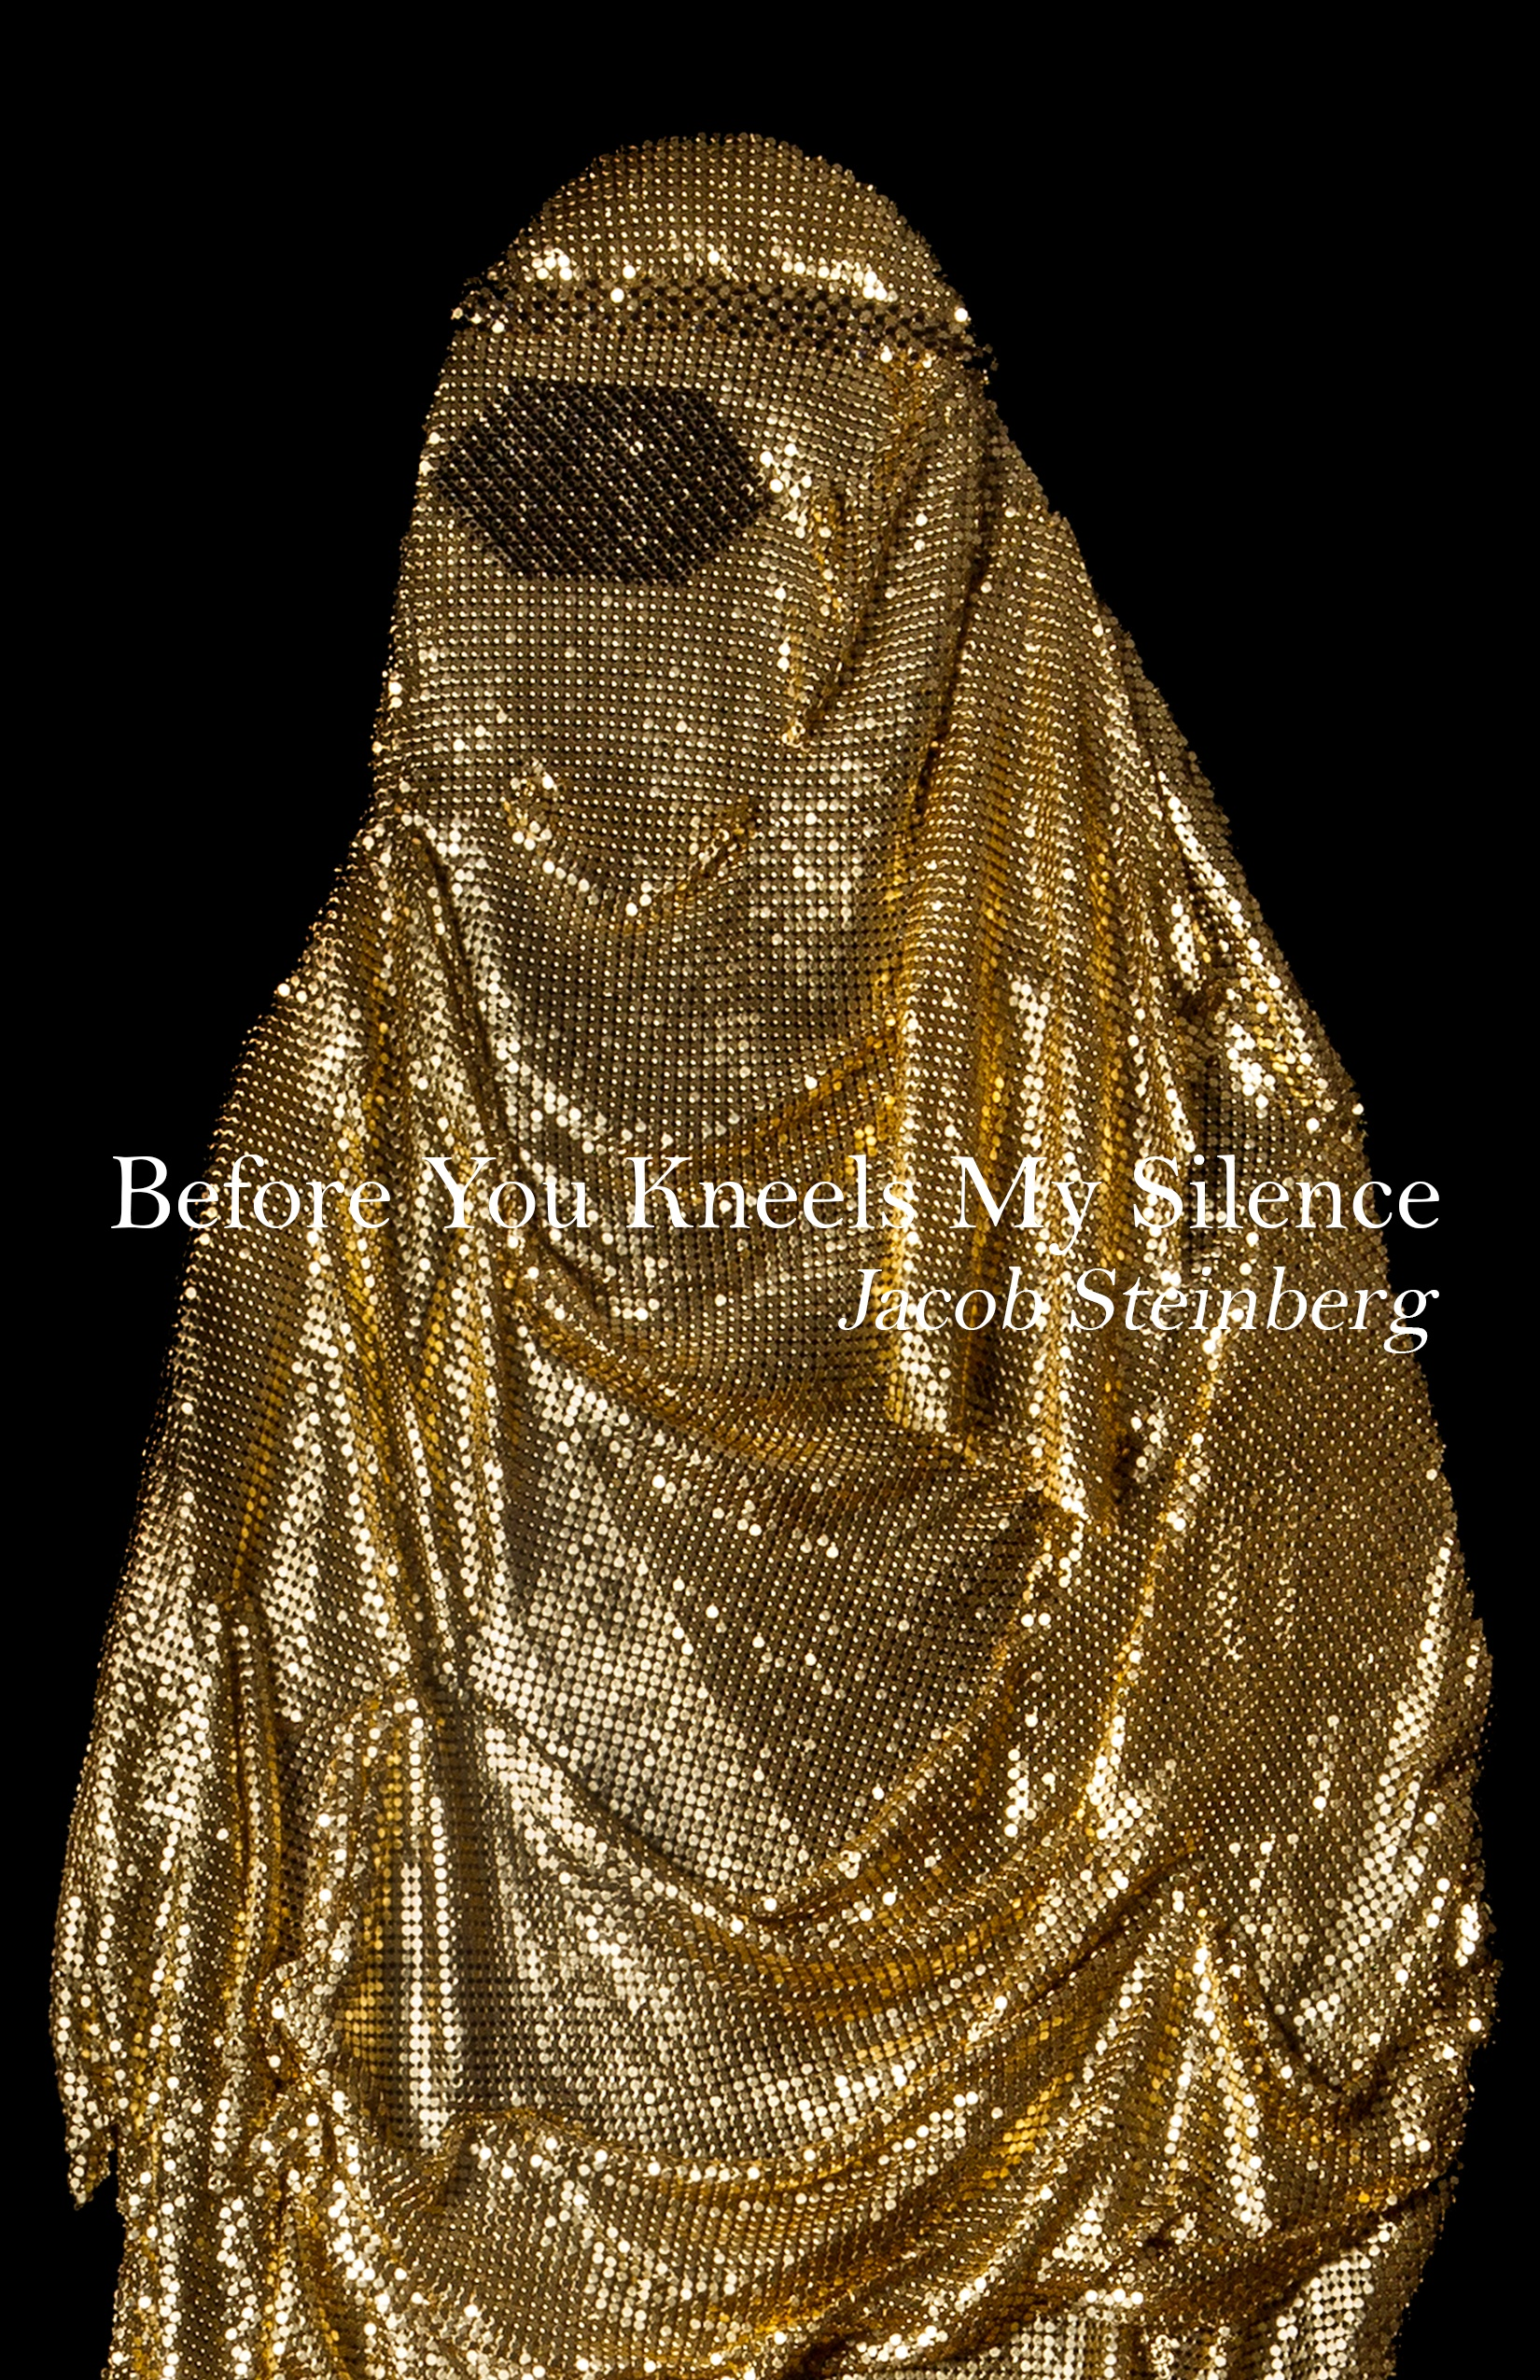 before you kneels my silence cover